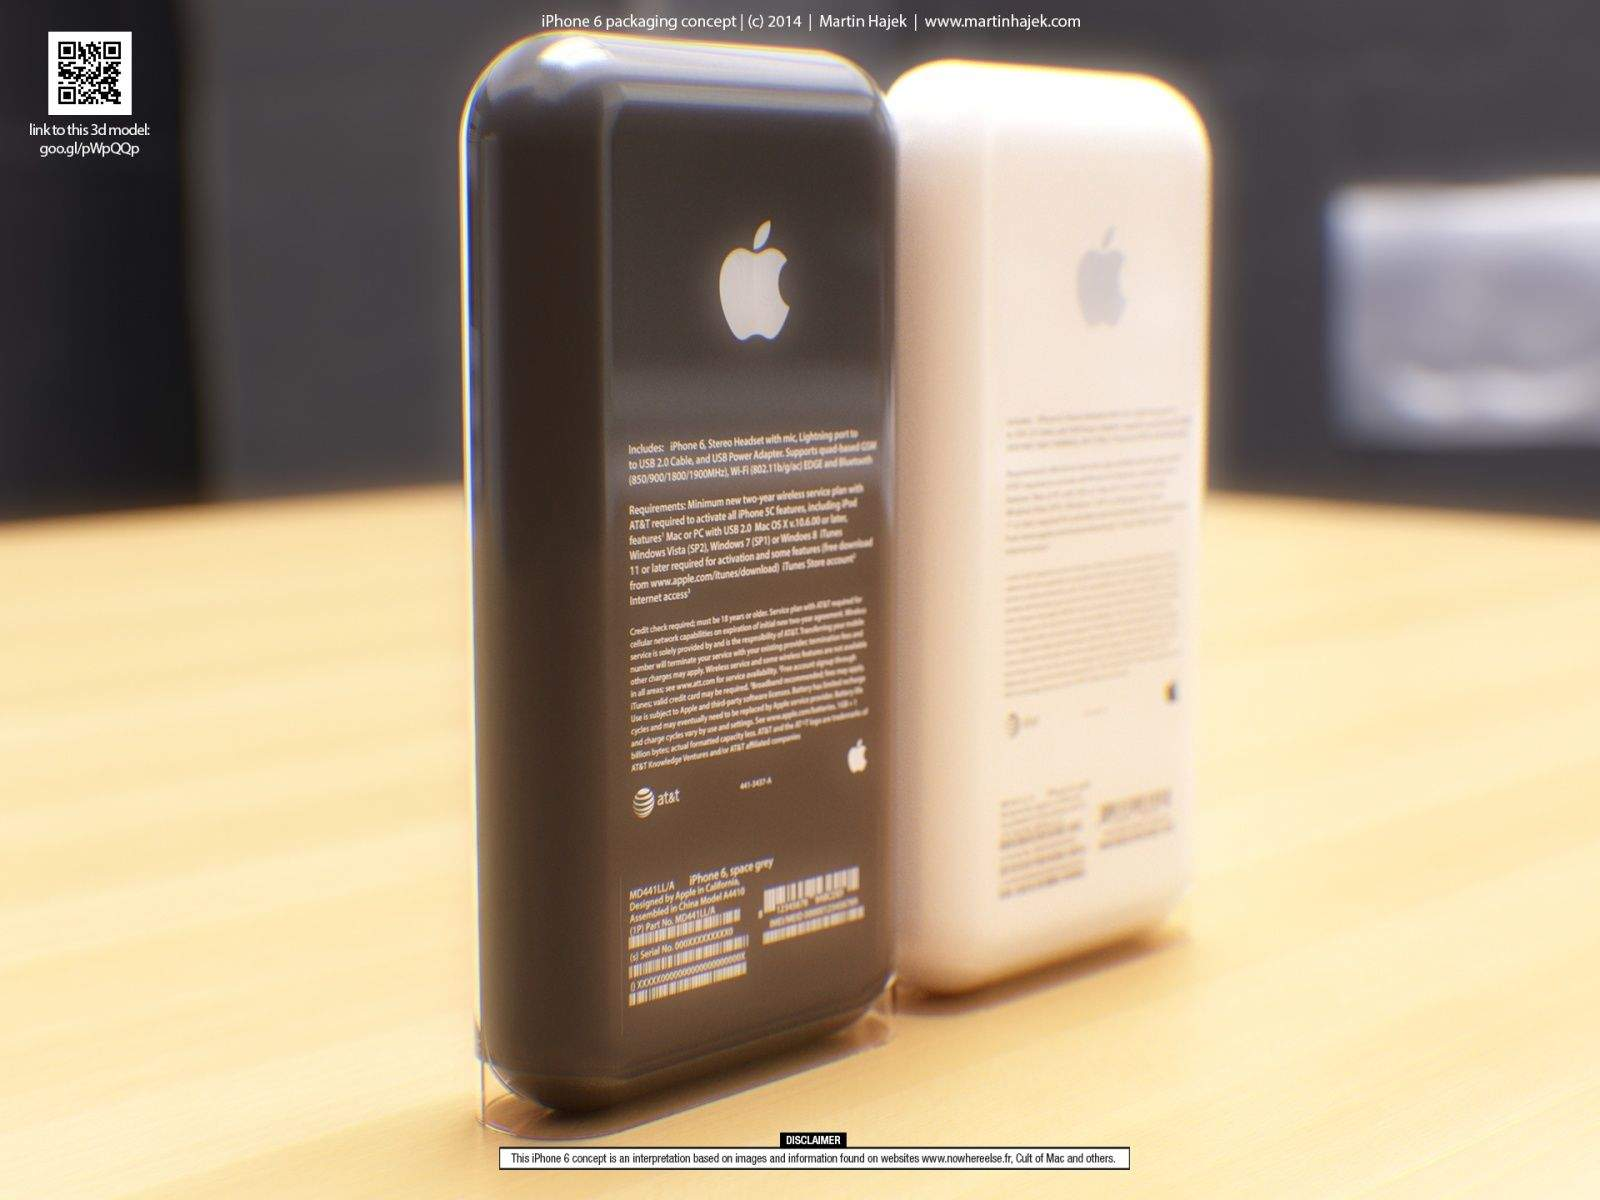 beautiful renders of new iphone 6 packaging make us drool